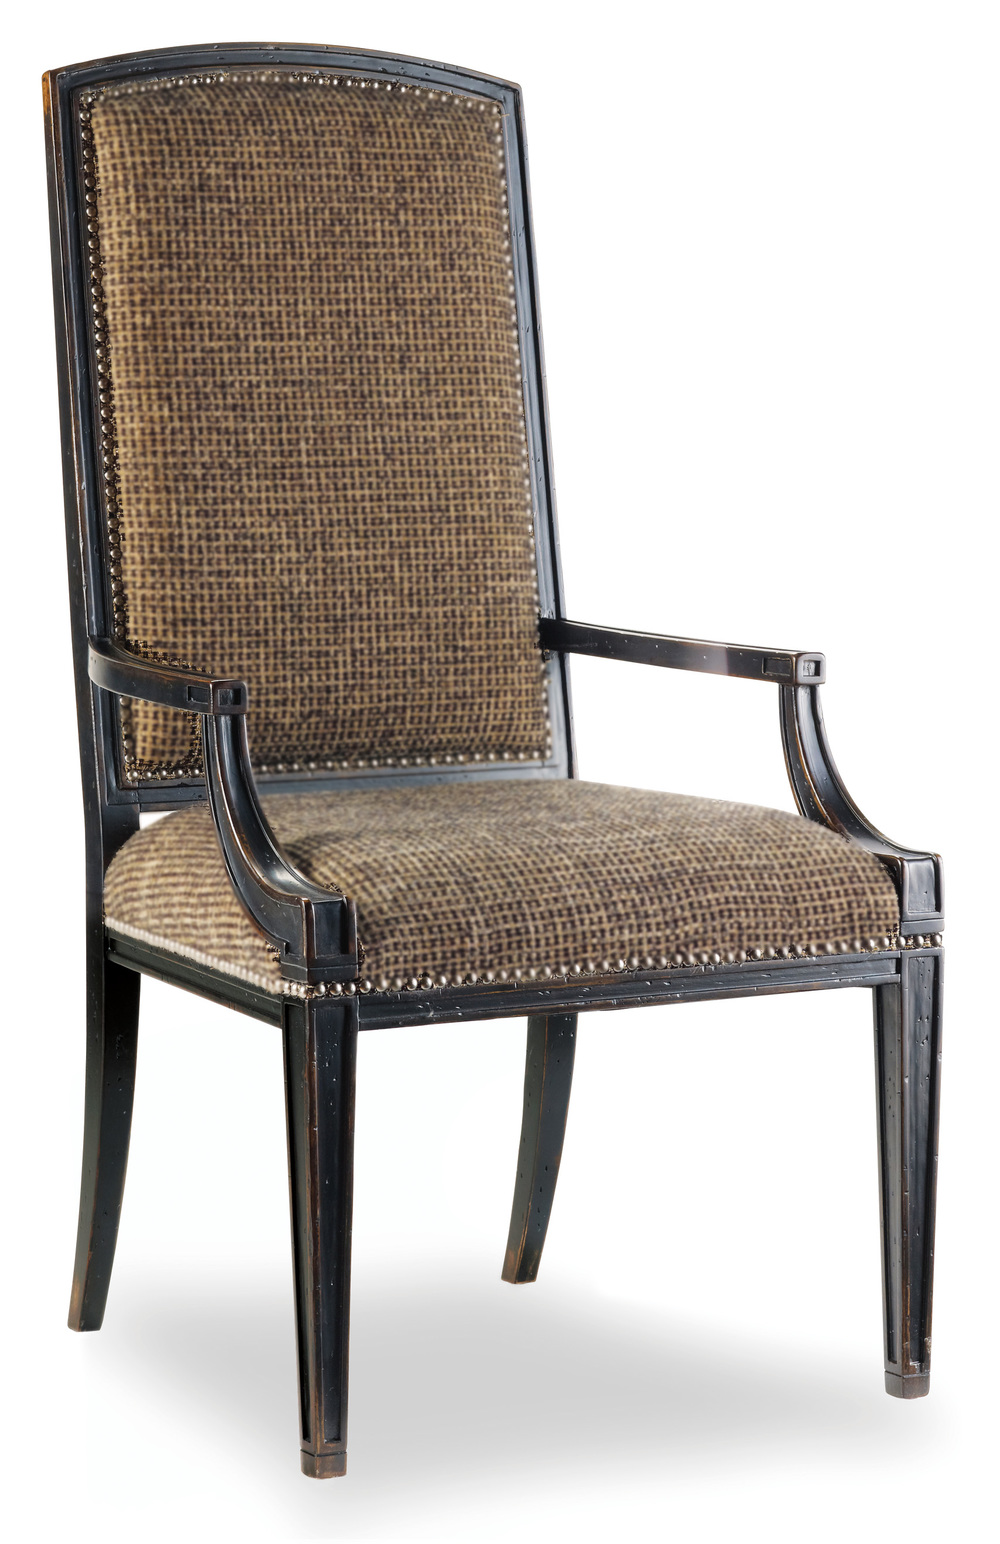 Hooker Furniture - Mirage Arm Chair